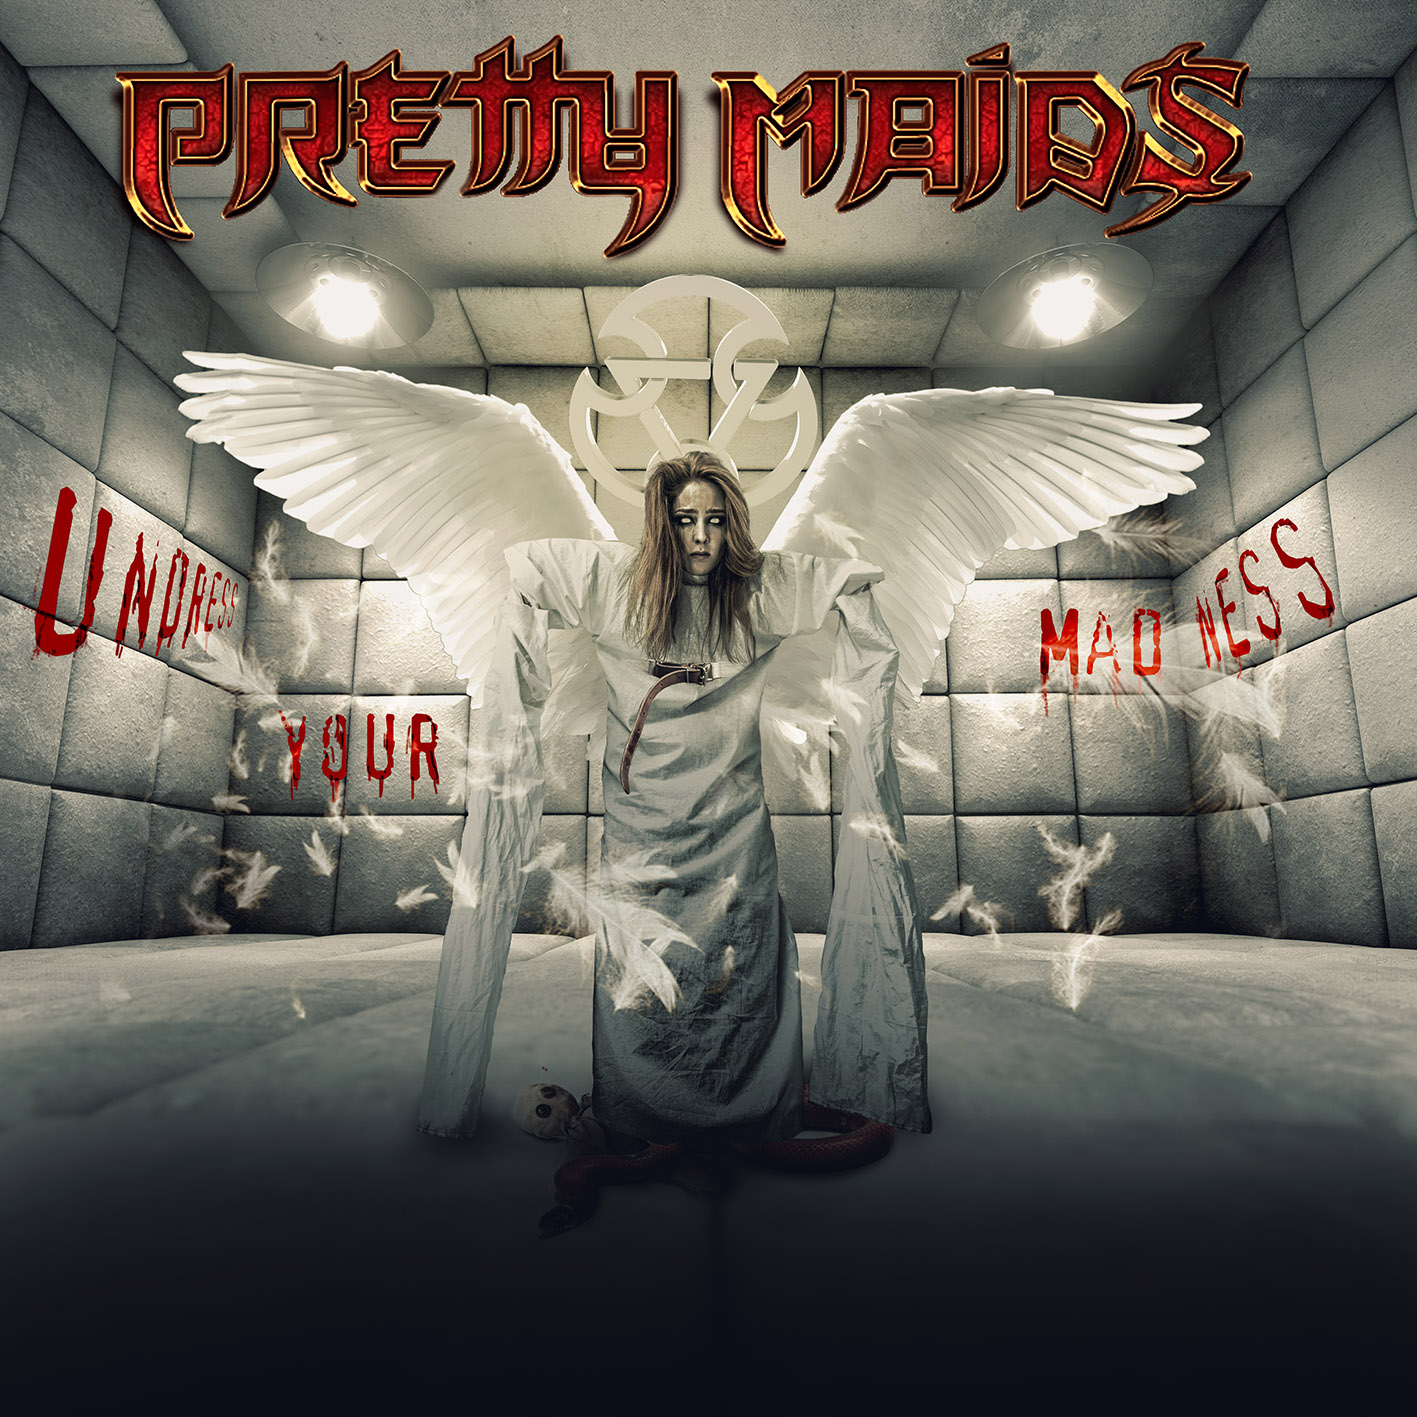 pretty-maids-undress-your-madness-album-review